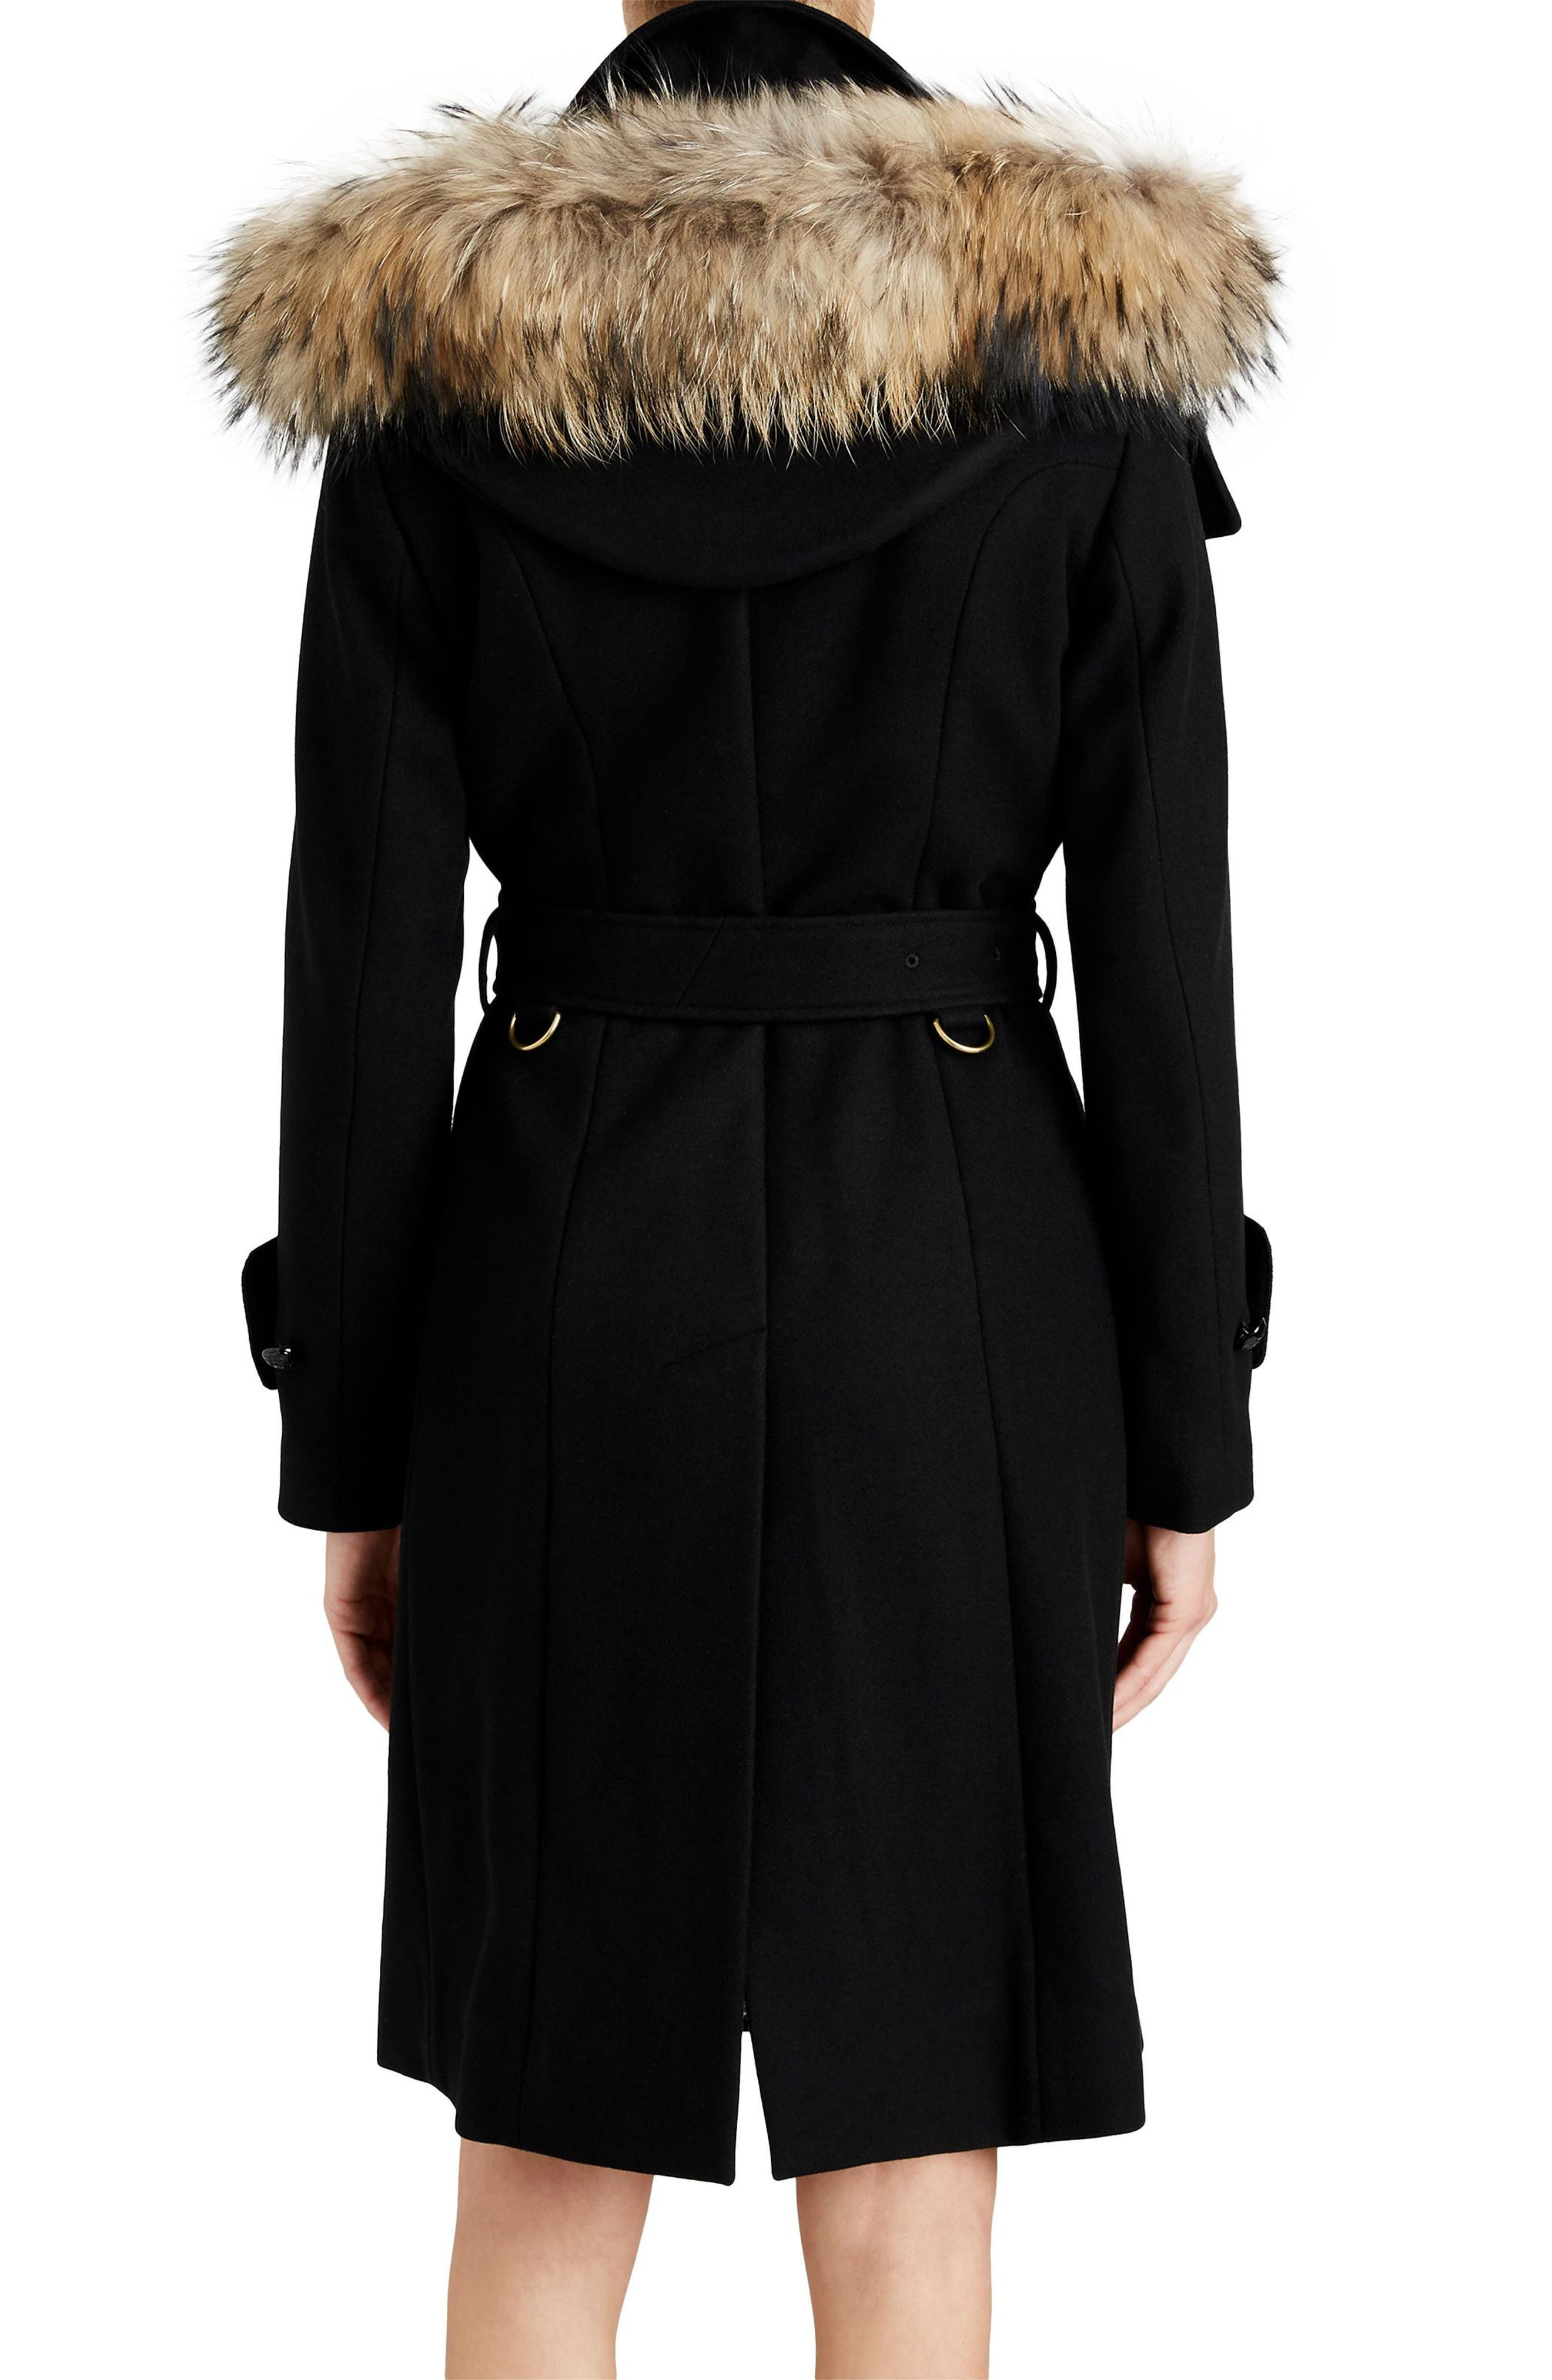 Claybrooke Wool Blend Coat with Removable Genuine Fox Fur Trim,                             Alternate thumbnail 3, color,                             001